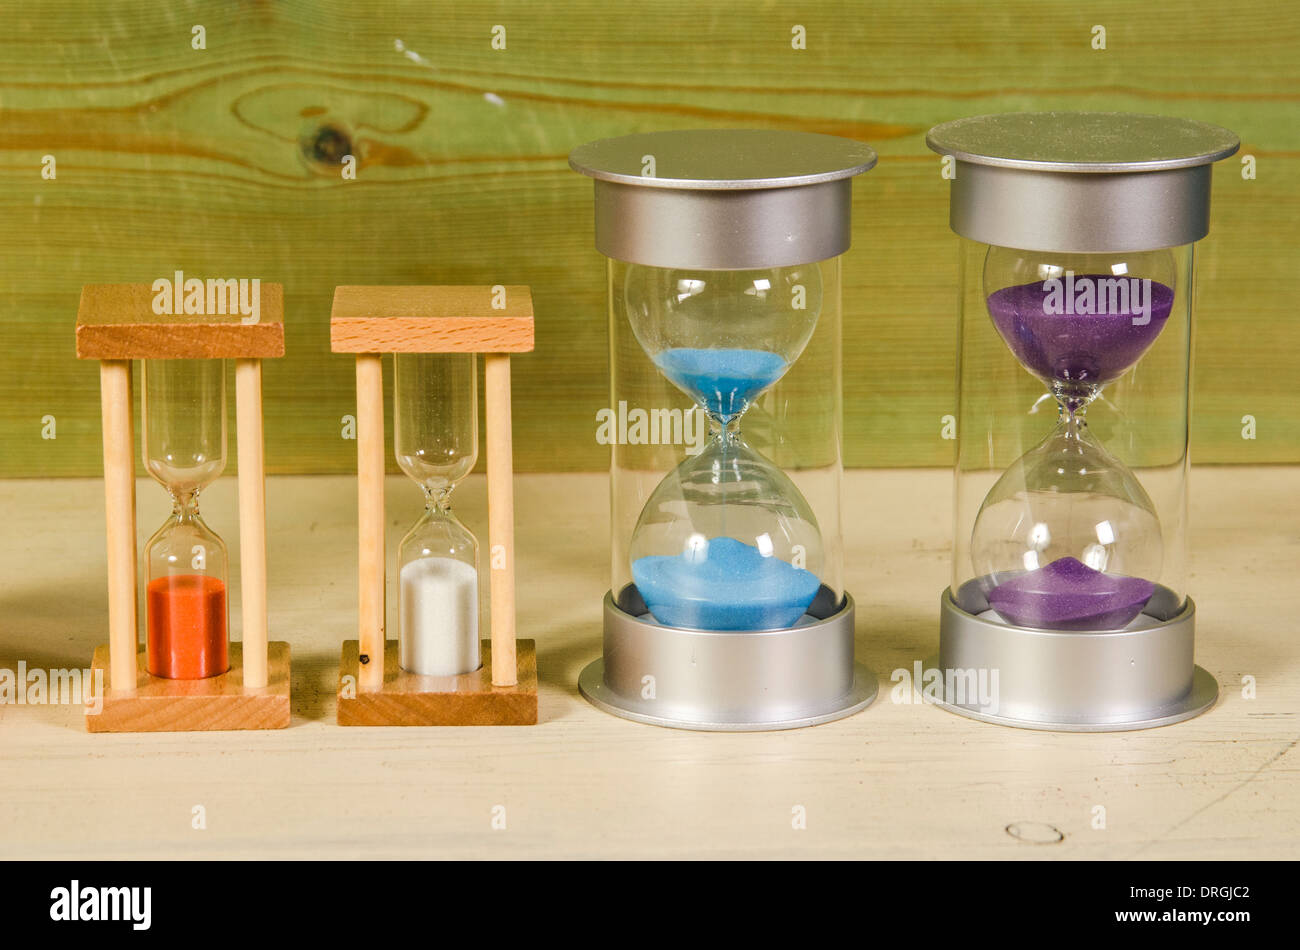 time management and time keeping instruments - Stock Image